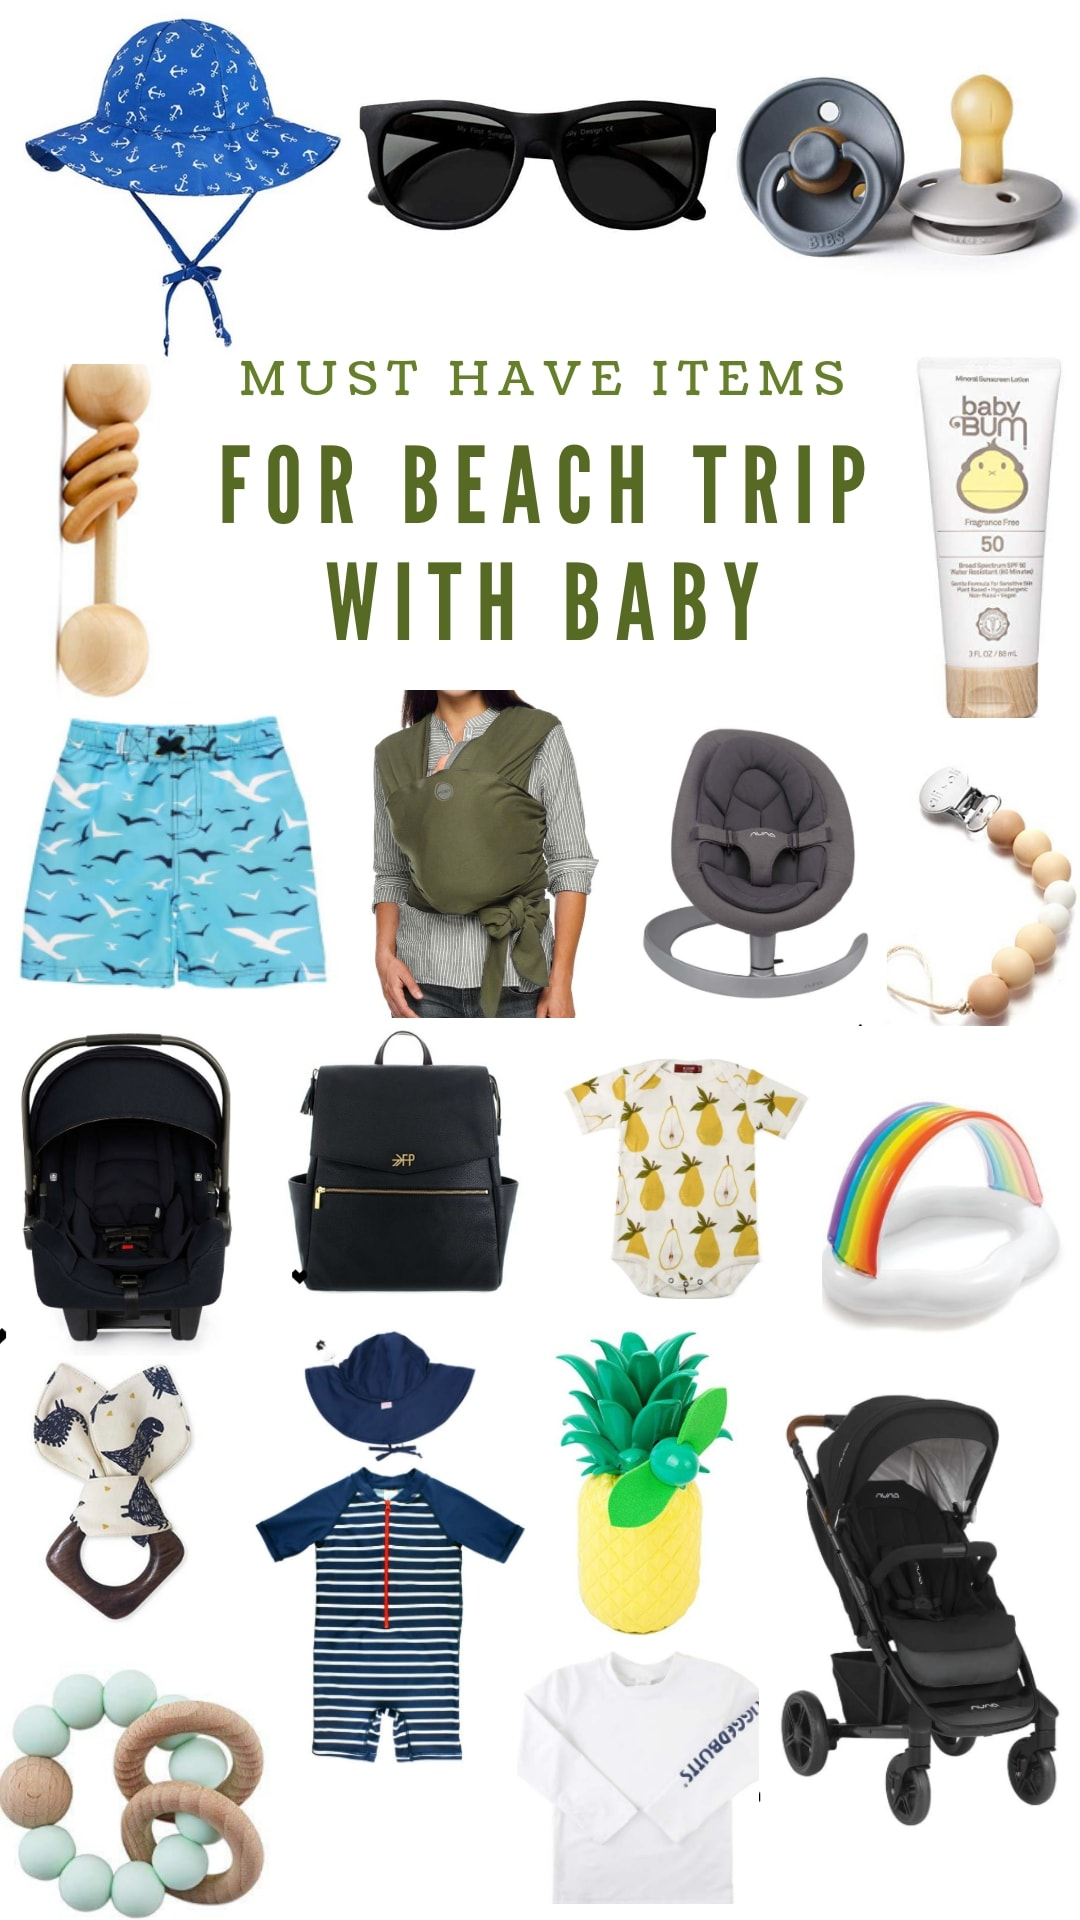 New Mom's Vacation Guide